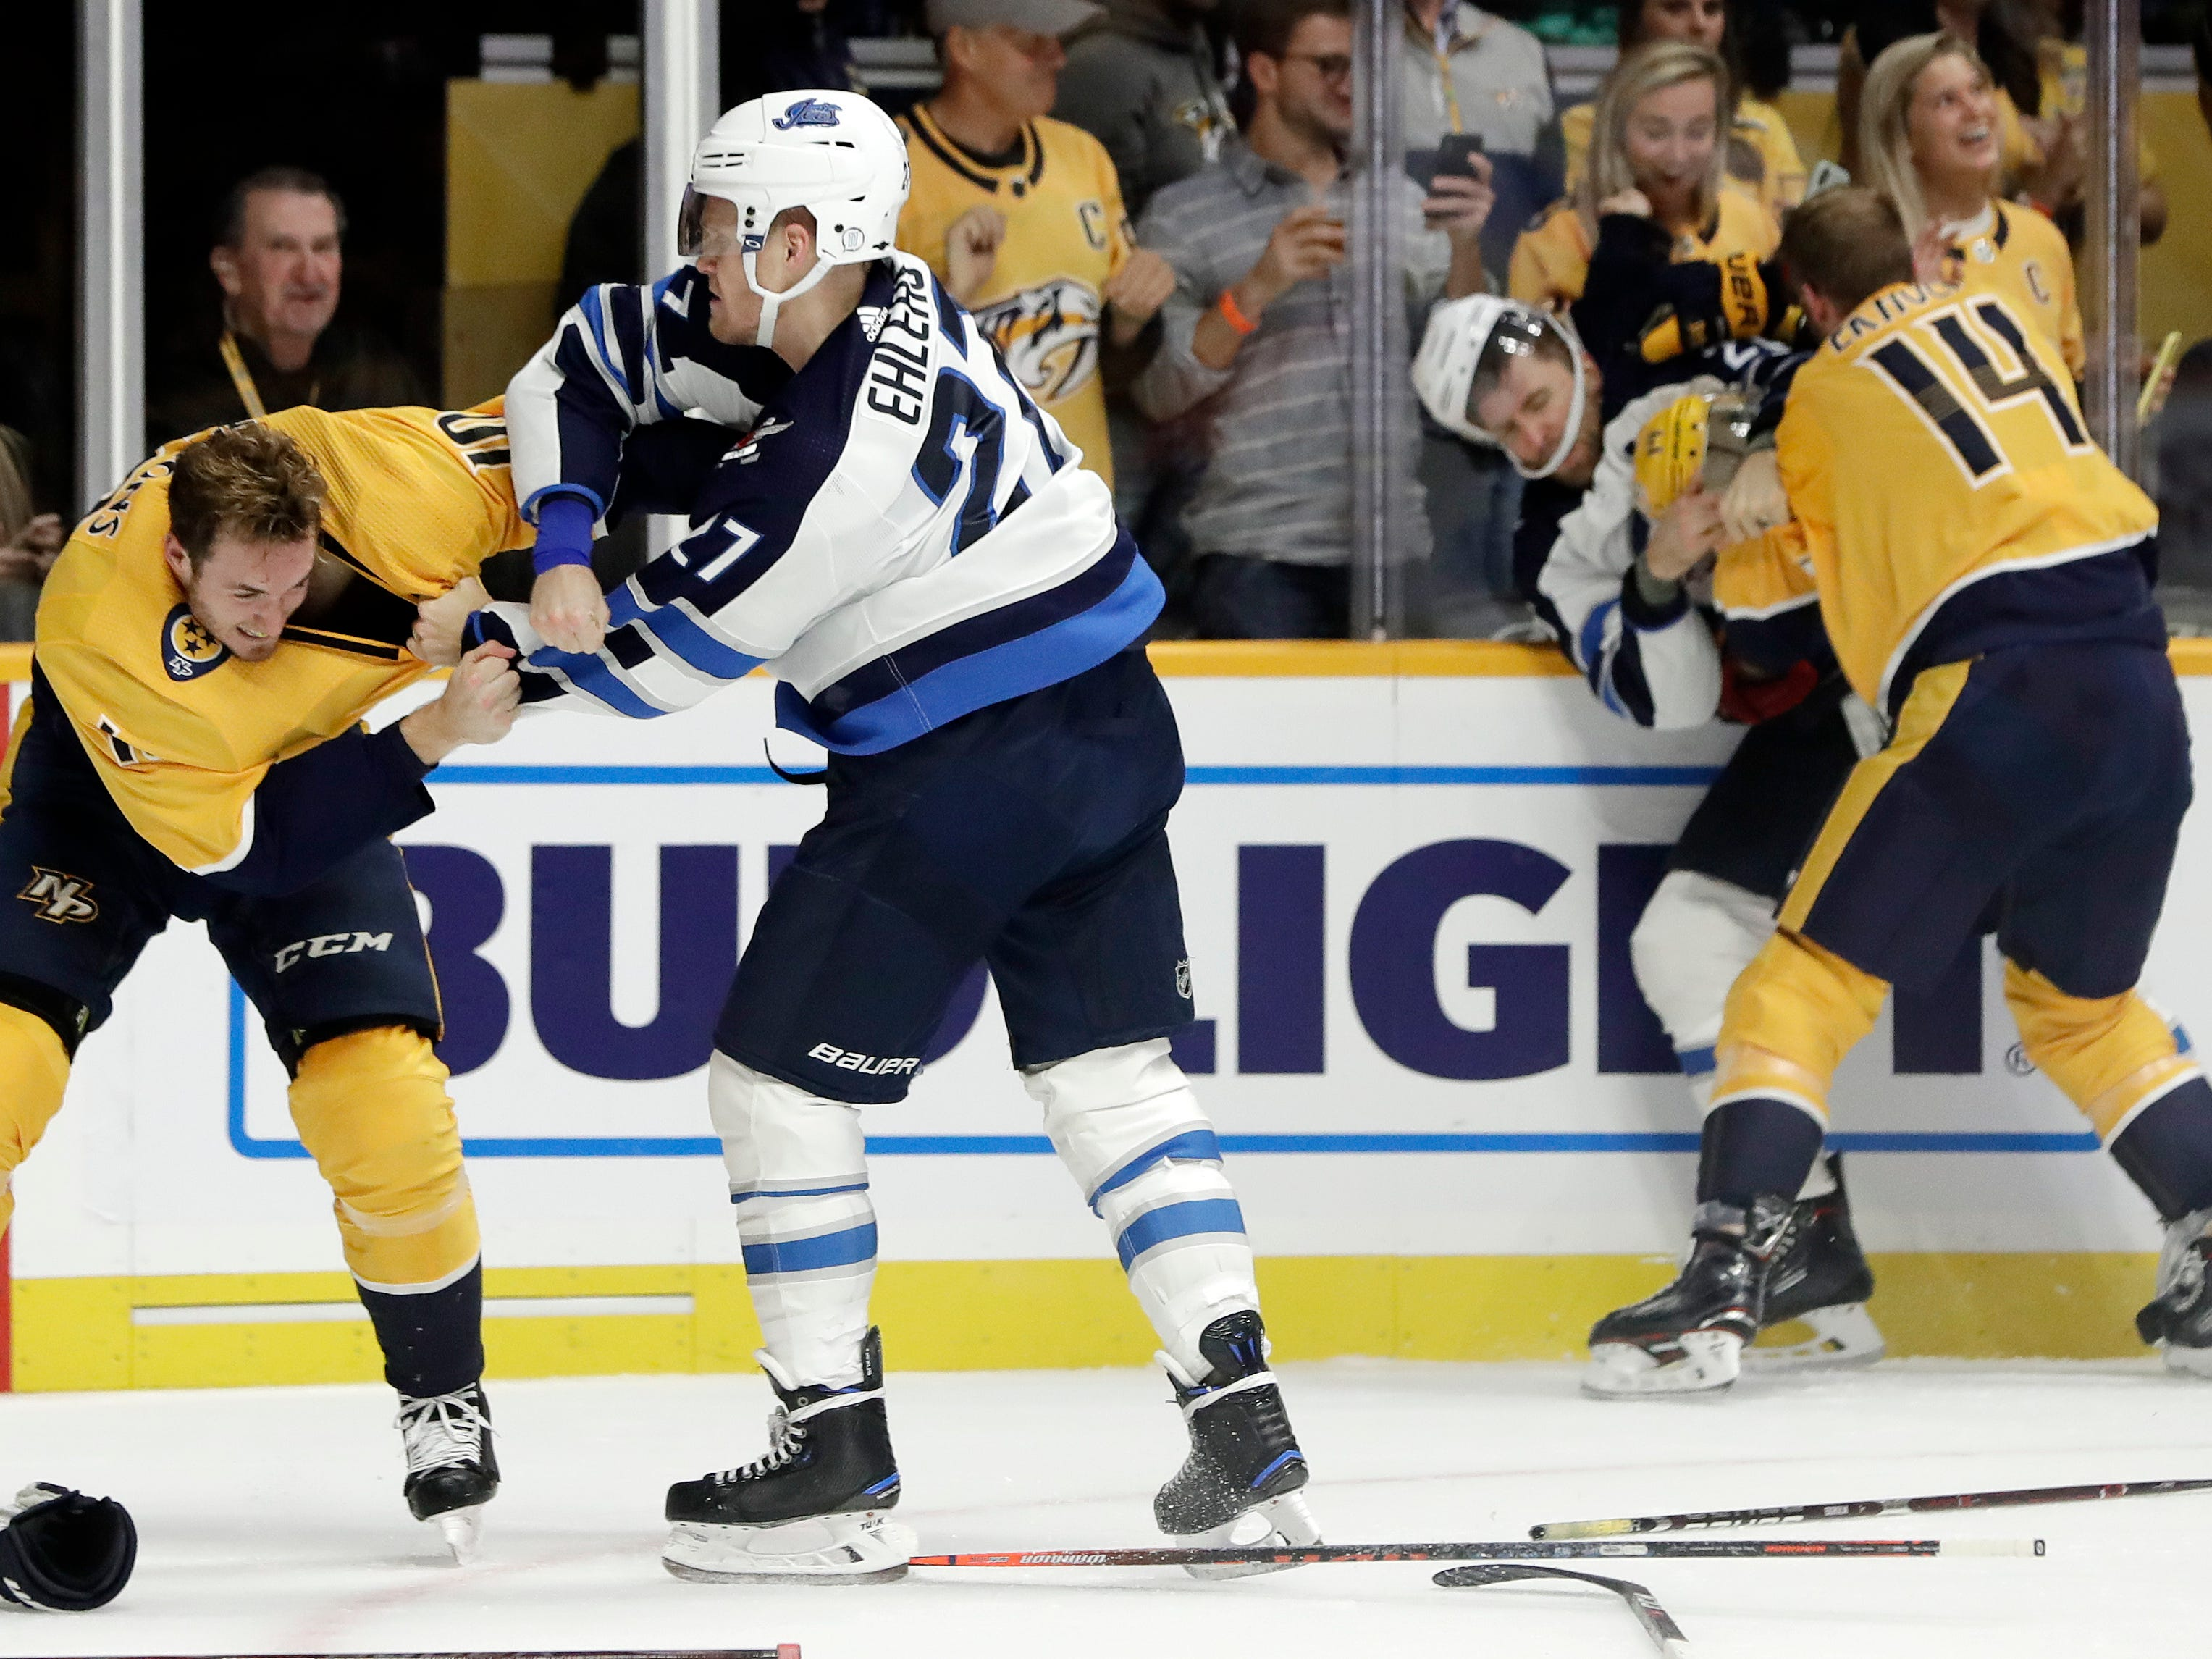 Oct. 11: Predators' Colton Sissons vs. Jets' Nikolaj Ehlers and Predators' Mattias Ekholm vs. Jets' Blake Wheeler